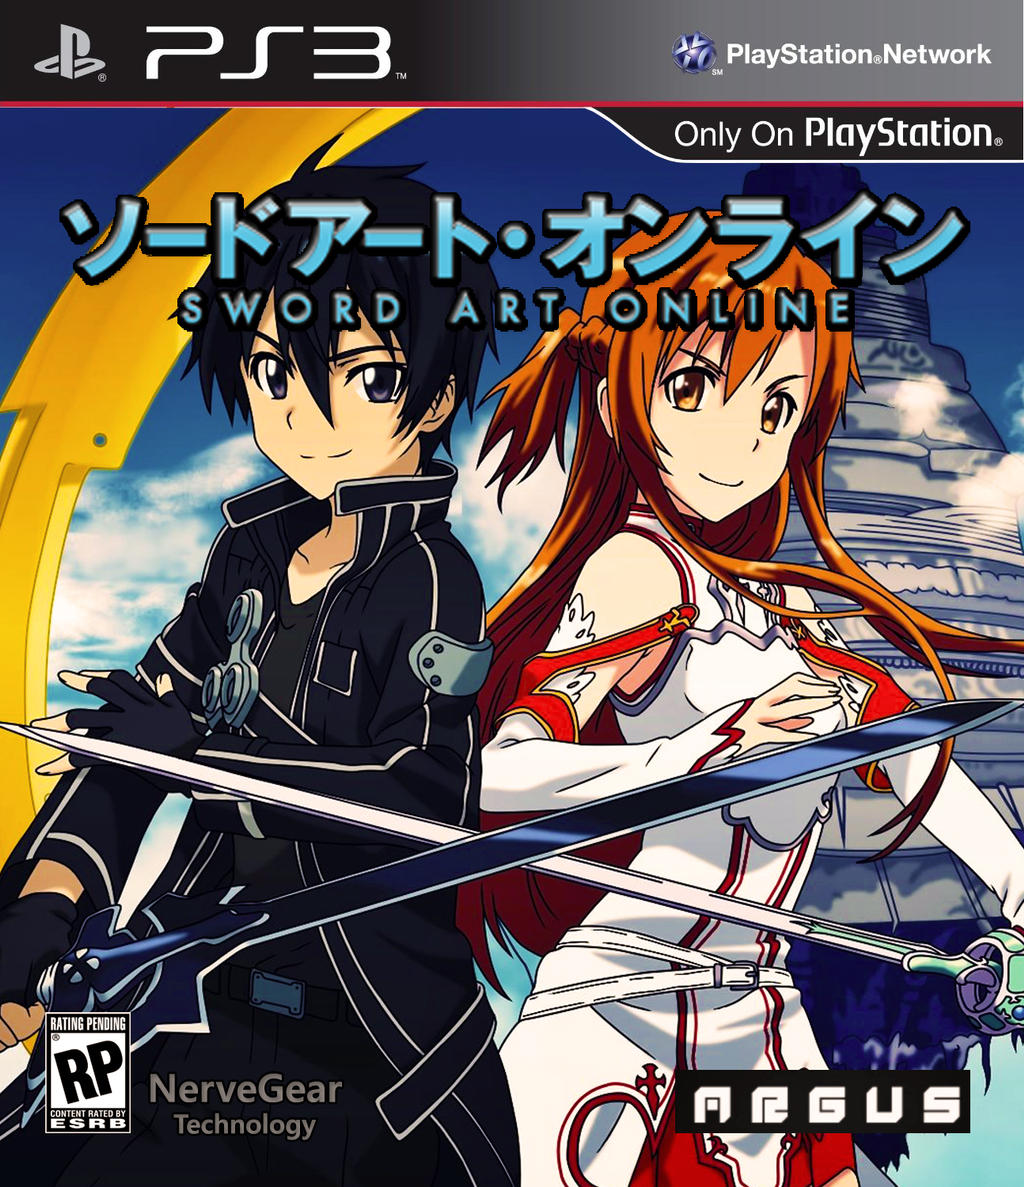 Dress up games favourites by asuna and kirito on deviantart -  Sword Art Online Ps3 Game Box Cover By Gusrg